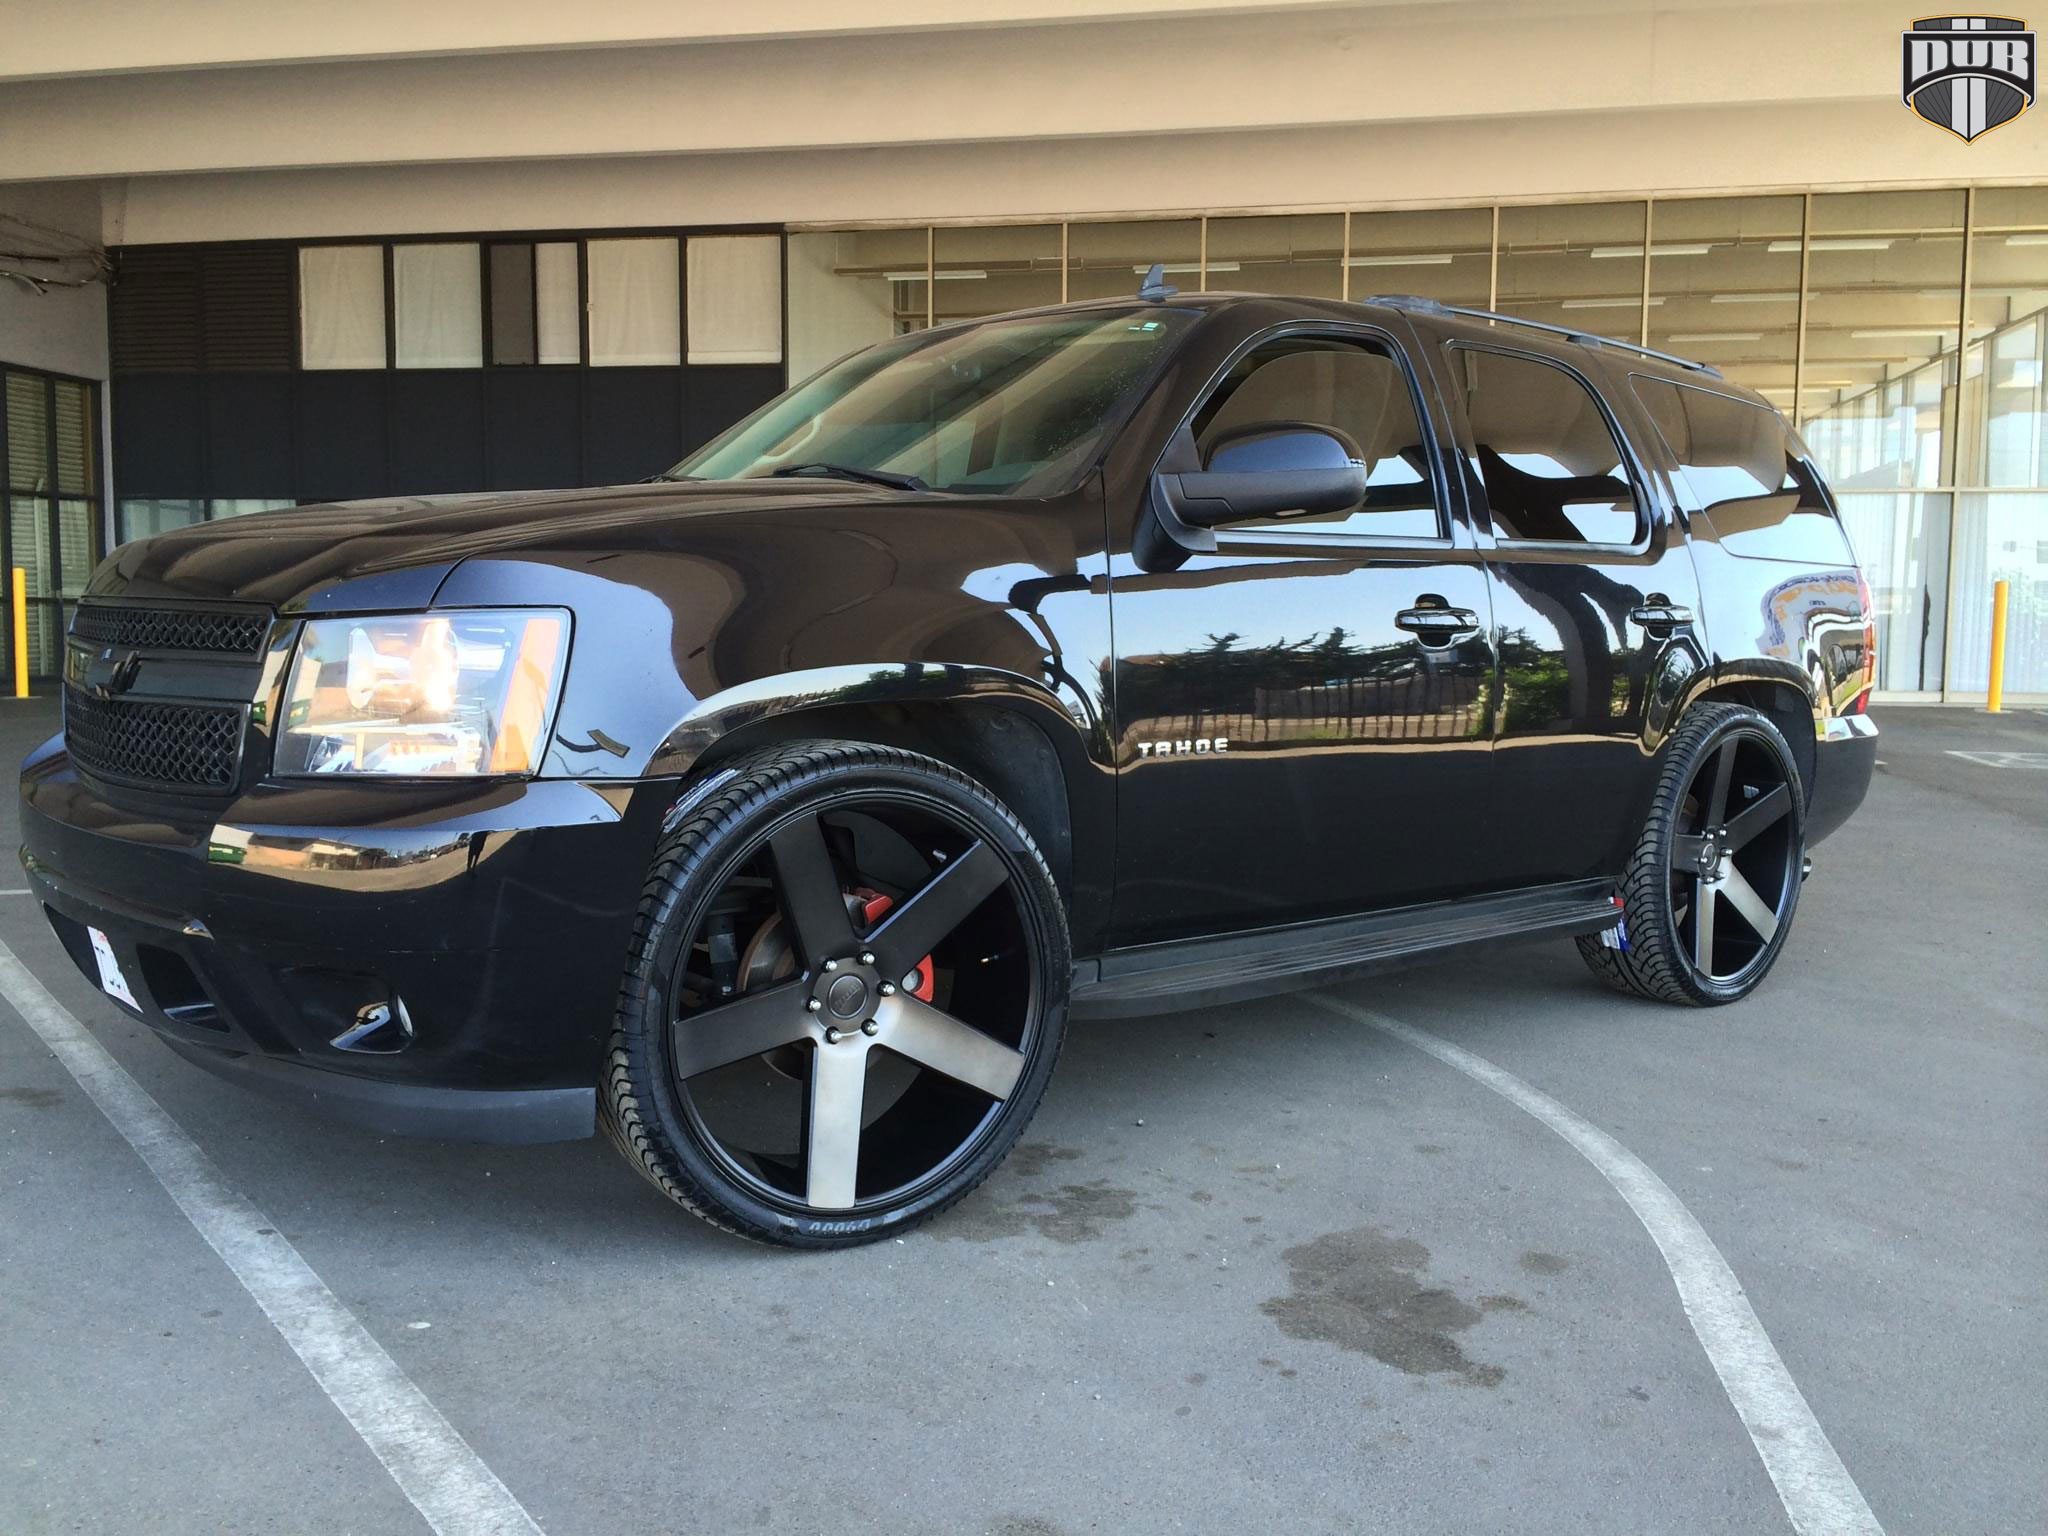 DUB 1 Piece Baller S116 Wheels Down South Custom